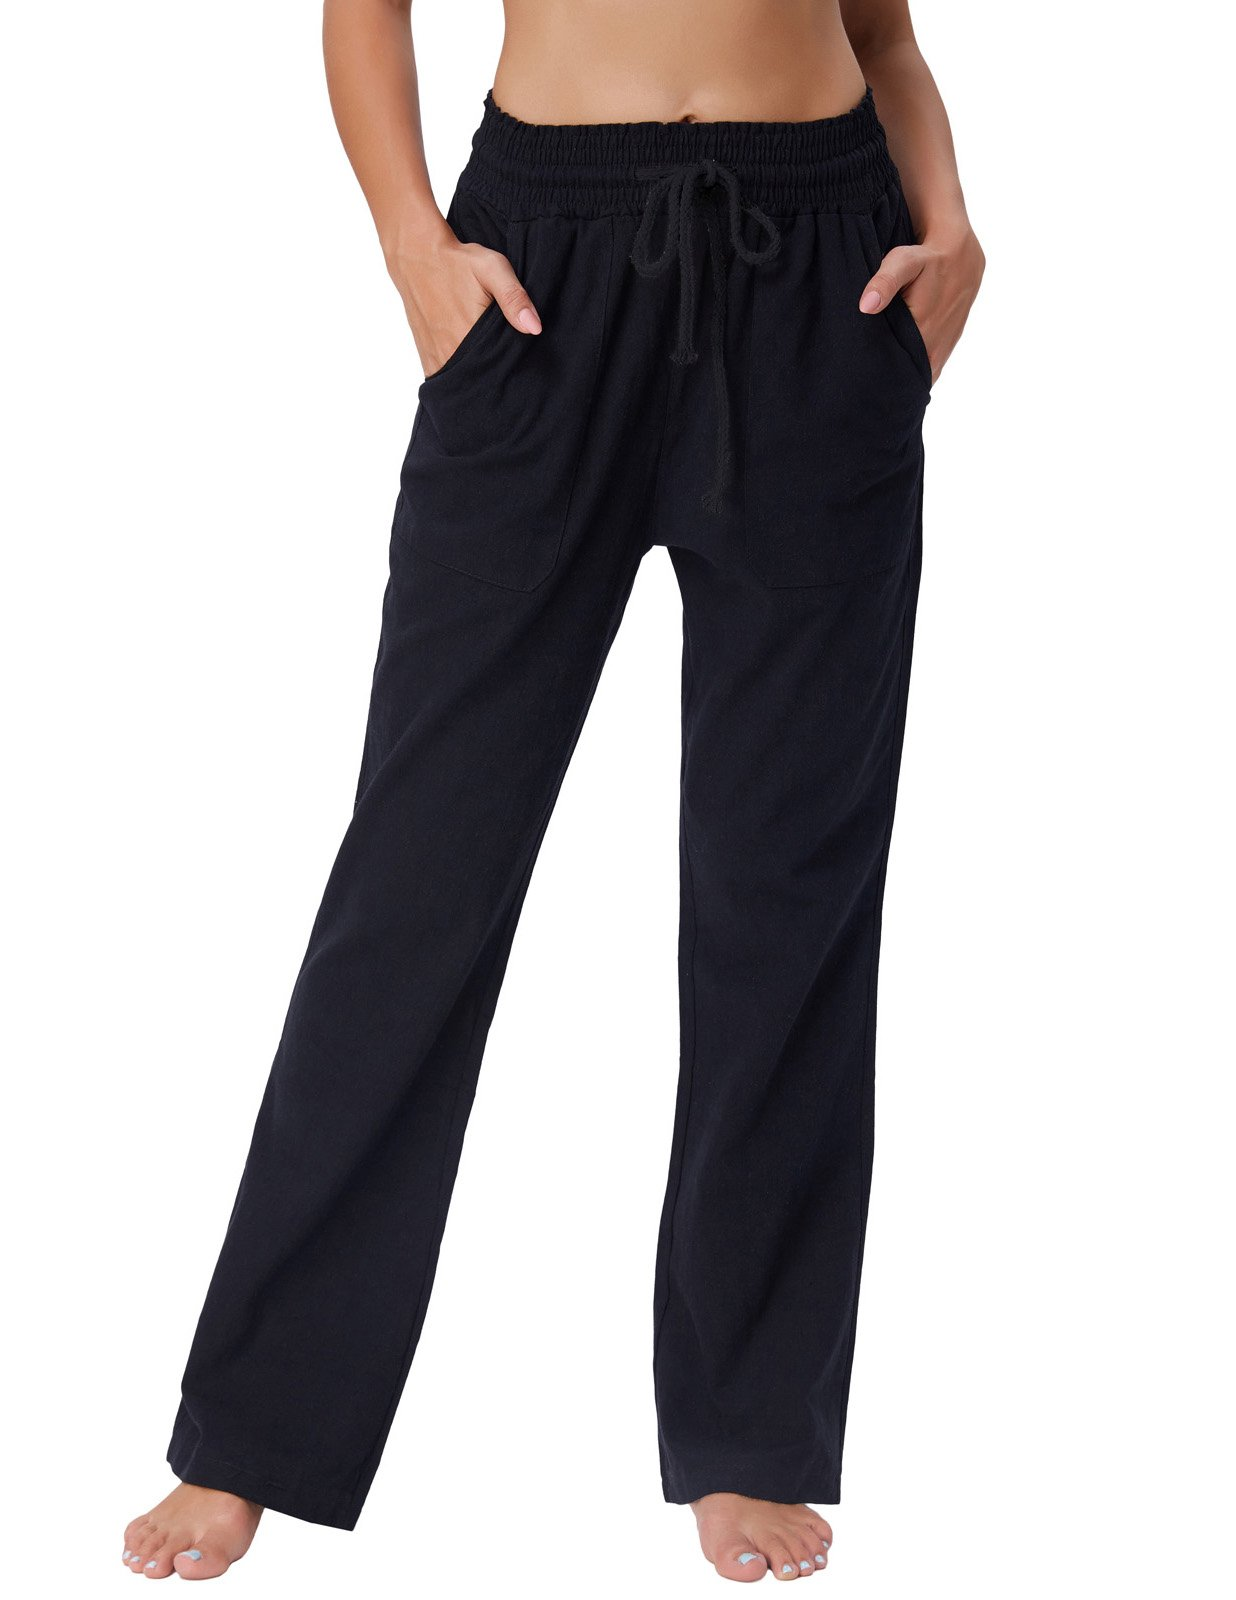 Women's Ease in to Comfort Fit Pants Straight Bootcut Pants Trouser Black XL